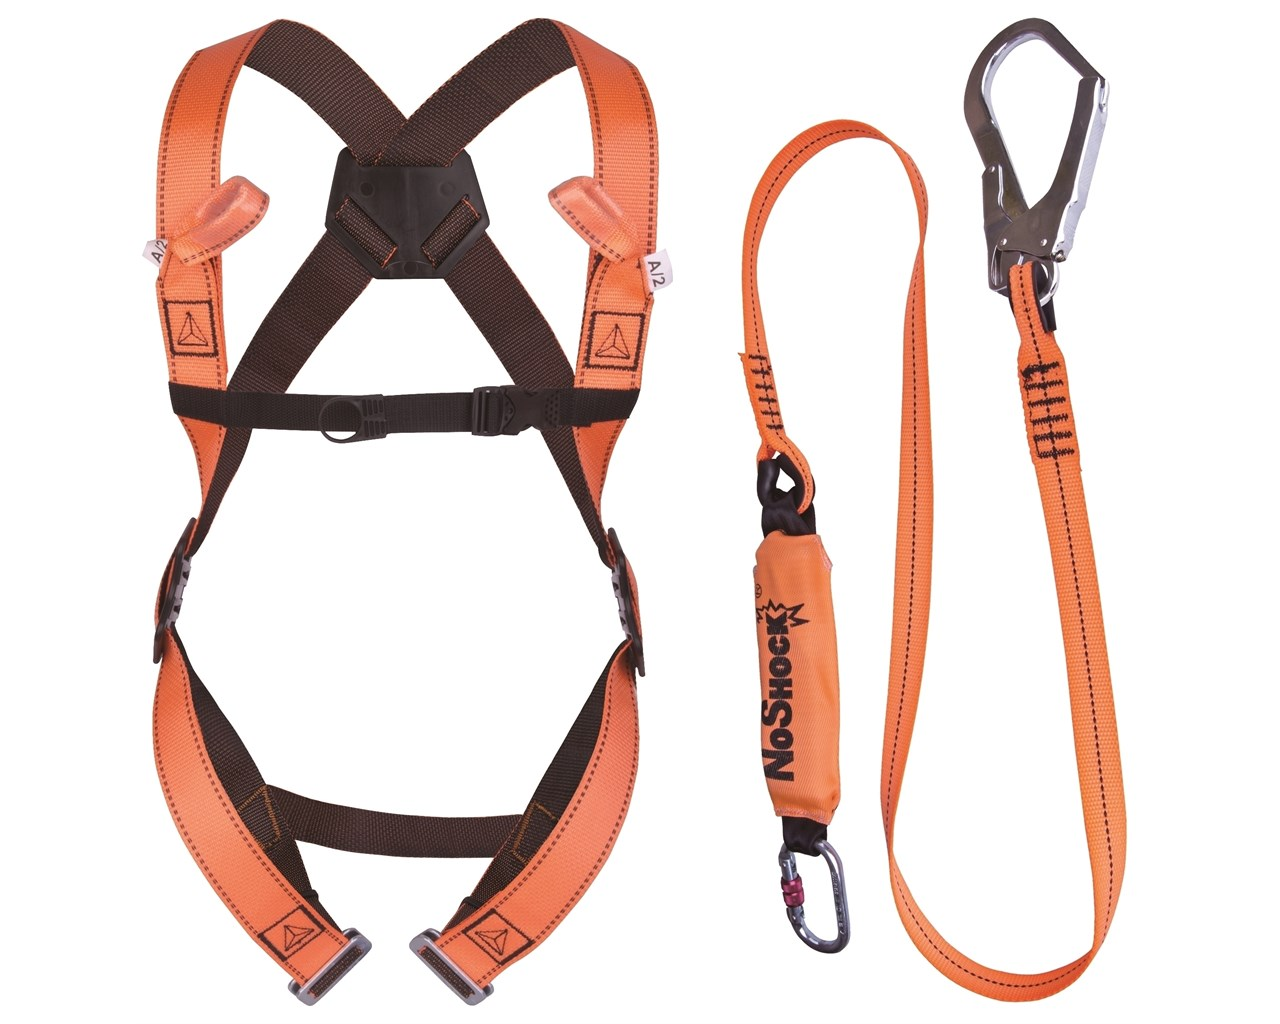 Forcefield Harness and Lanyard in a Bag 022-KIT-100-XL